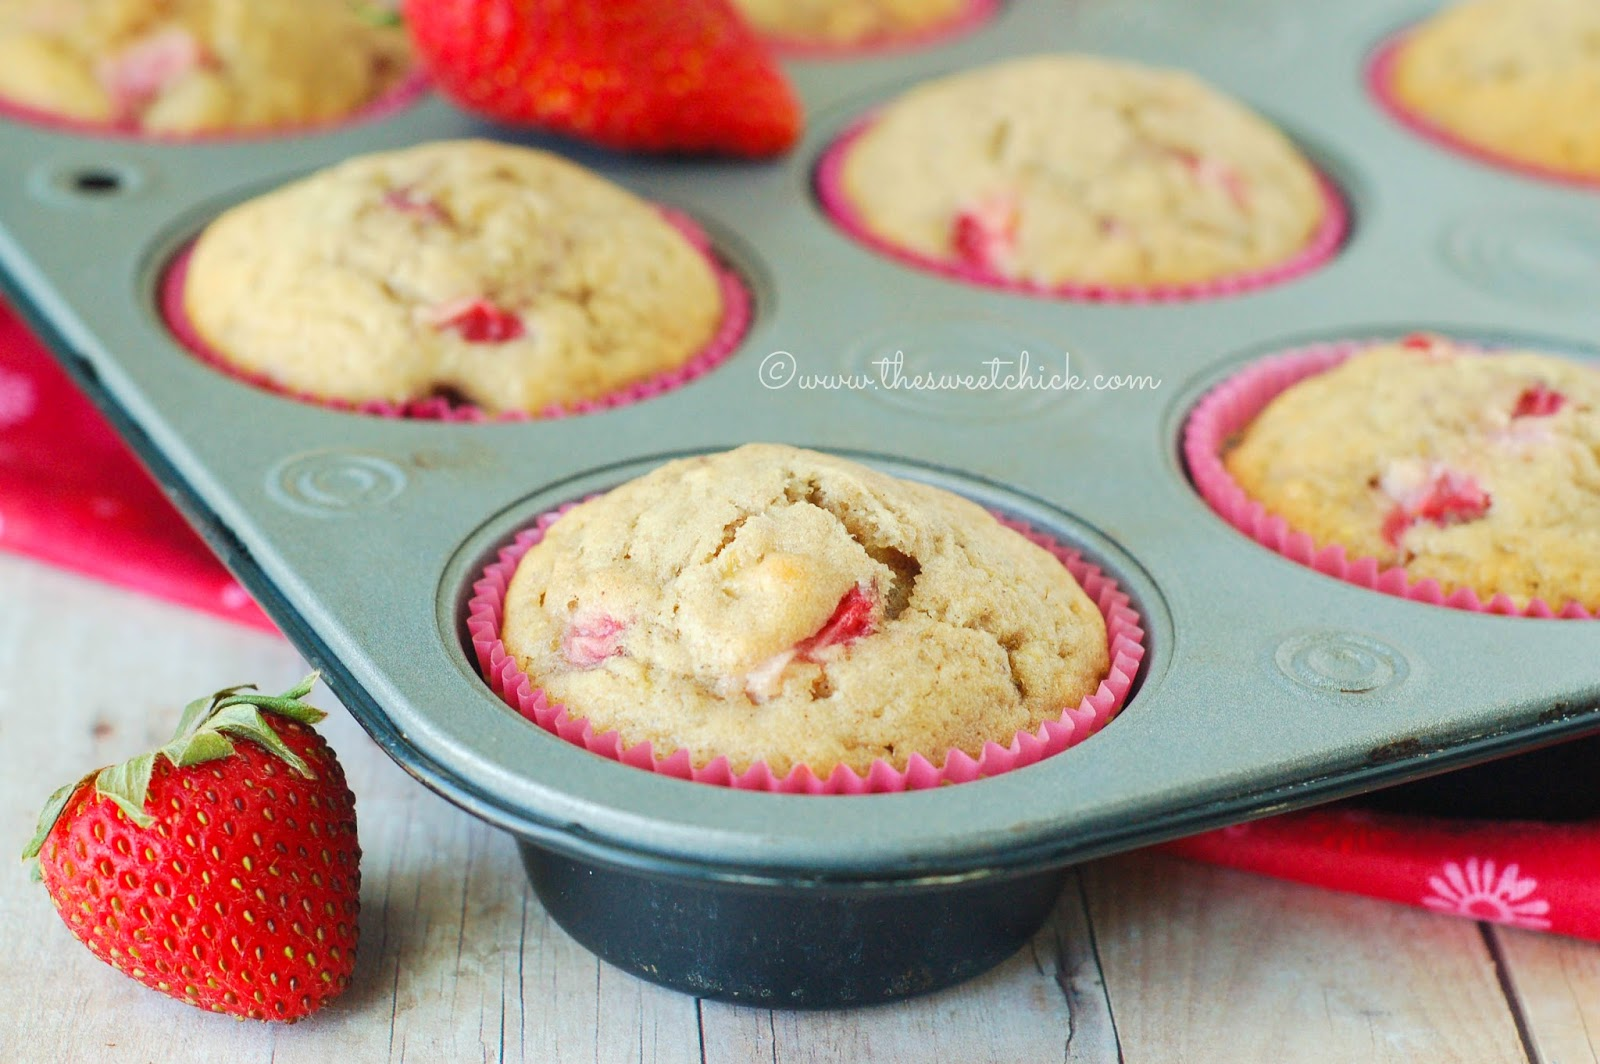 Strawberry Coconut Banana Muffins @www.thesweetchick.com